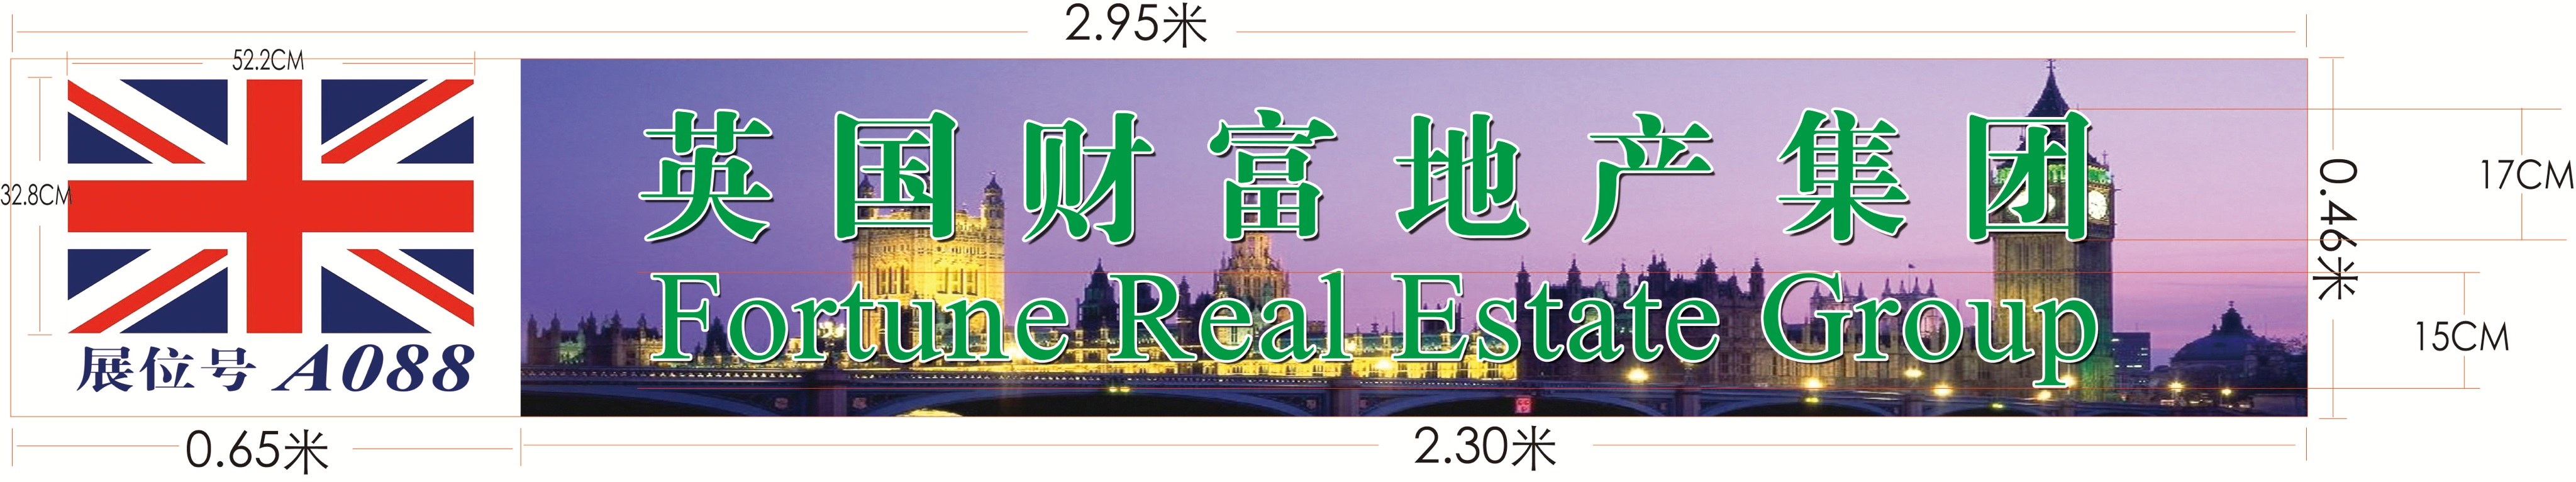 Fascia Board Exhibition Booth : Beijing international property investment expo